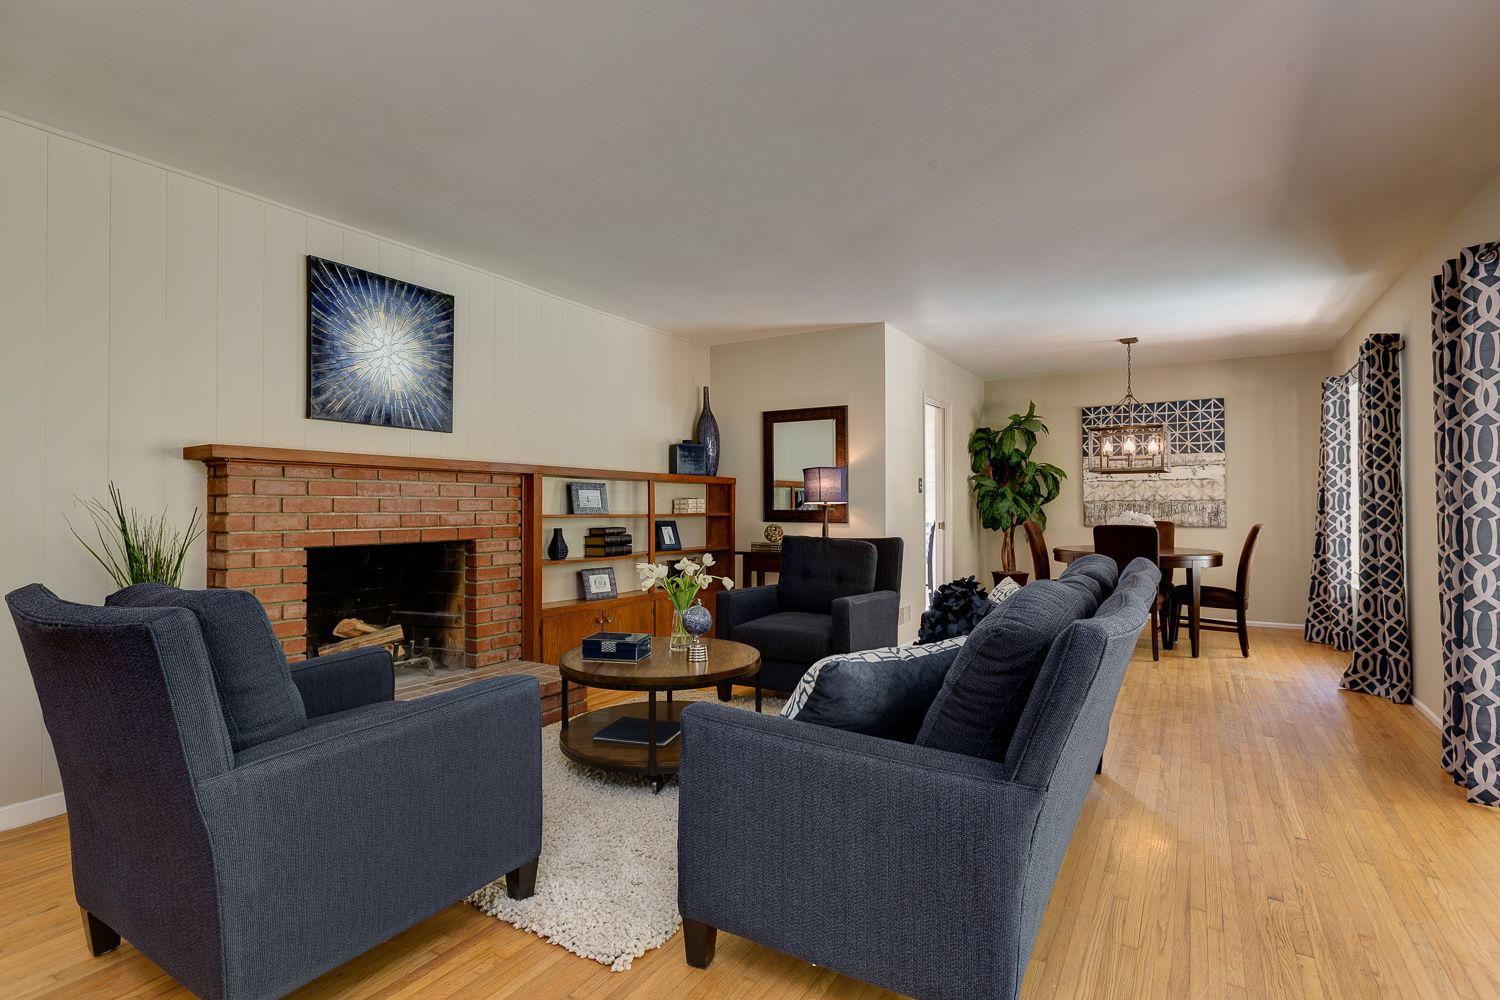 Blue Sofa With Brick Fireplace And Light Hardwood Floors Blue Sofa With Brick Fireplace And Light Hardwood F Light Hardwood Floors Brick Fireplace Wall Color